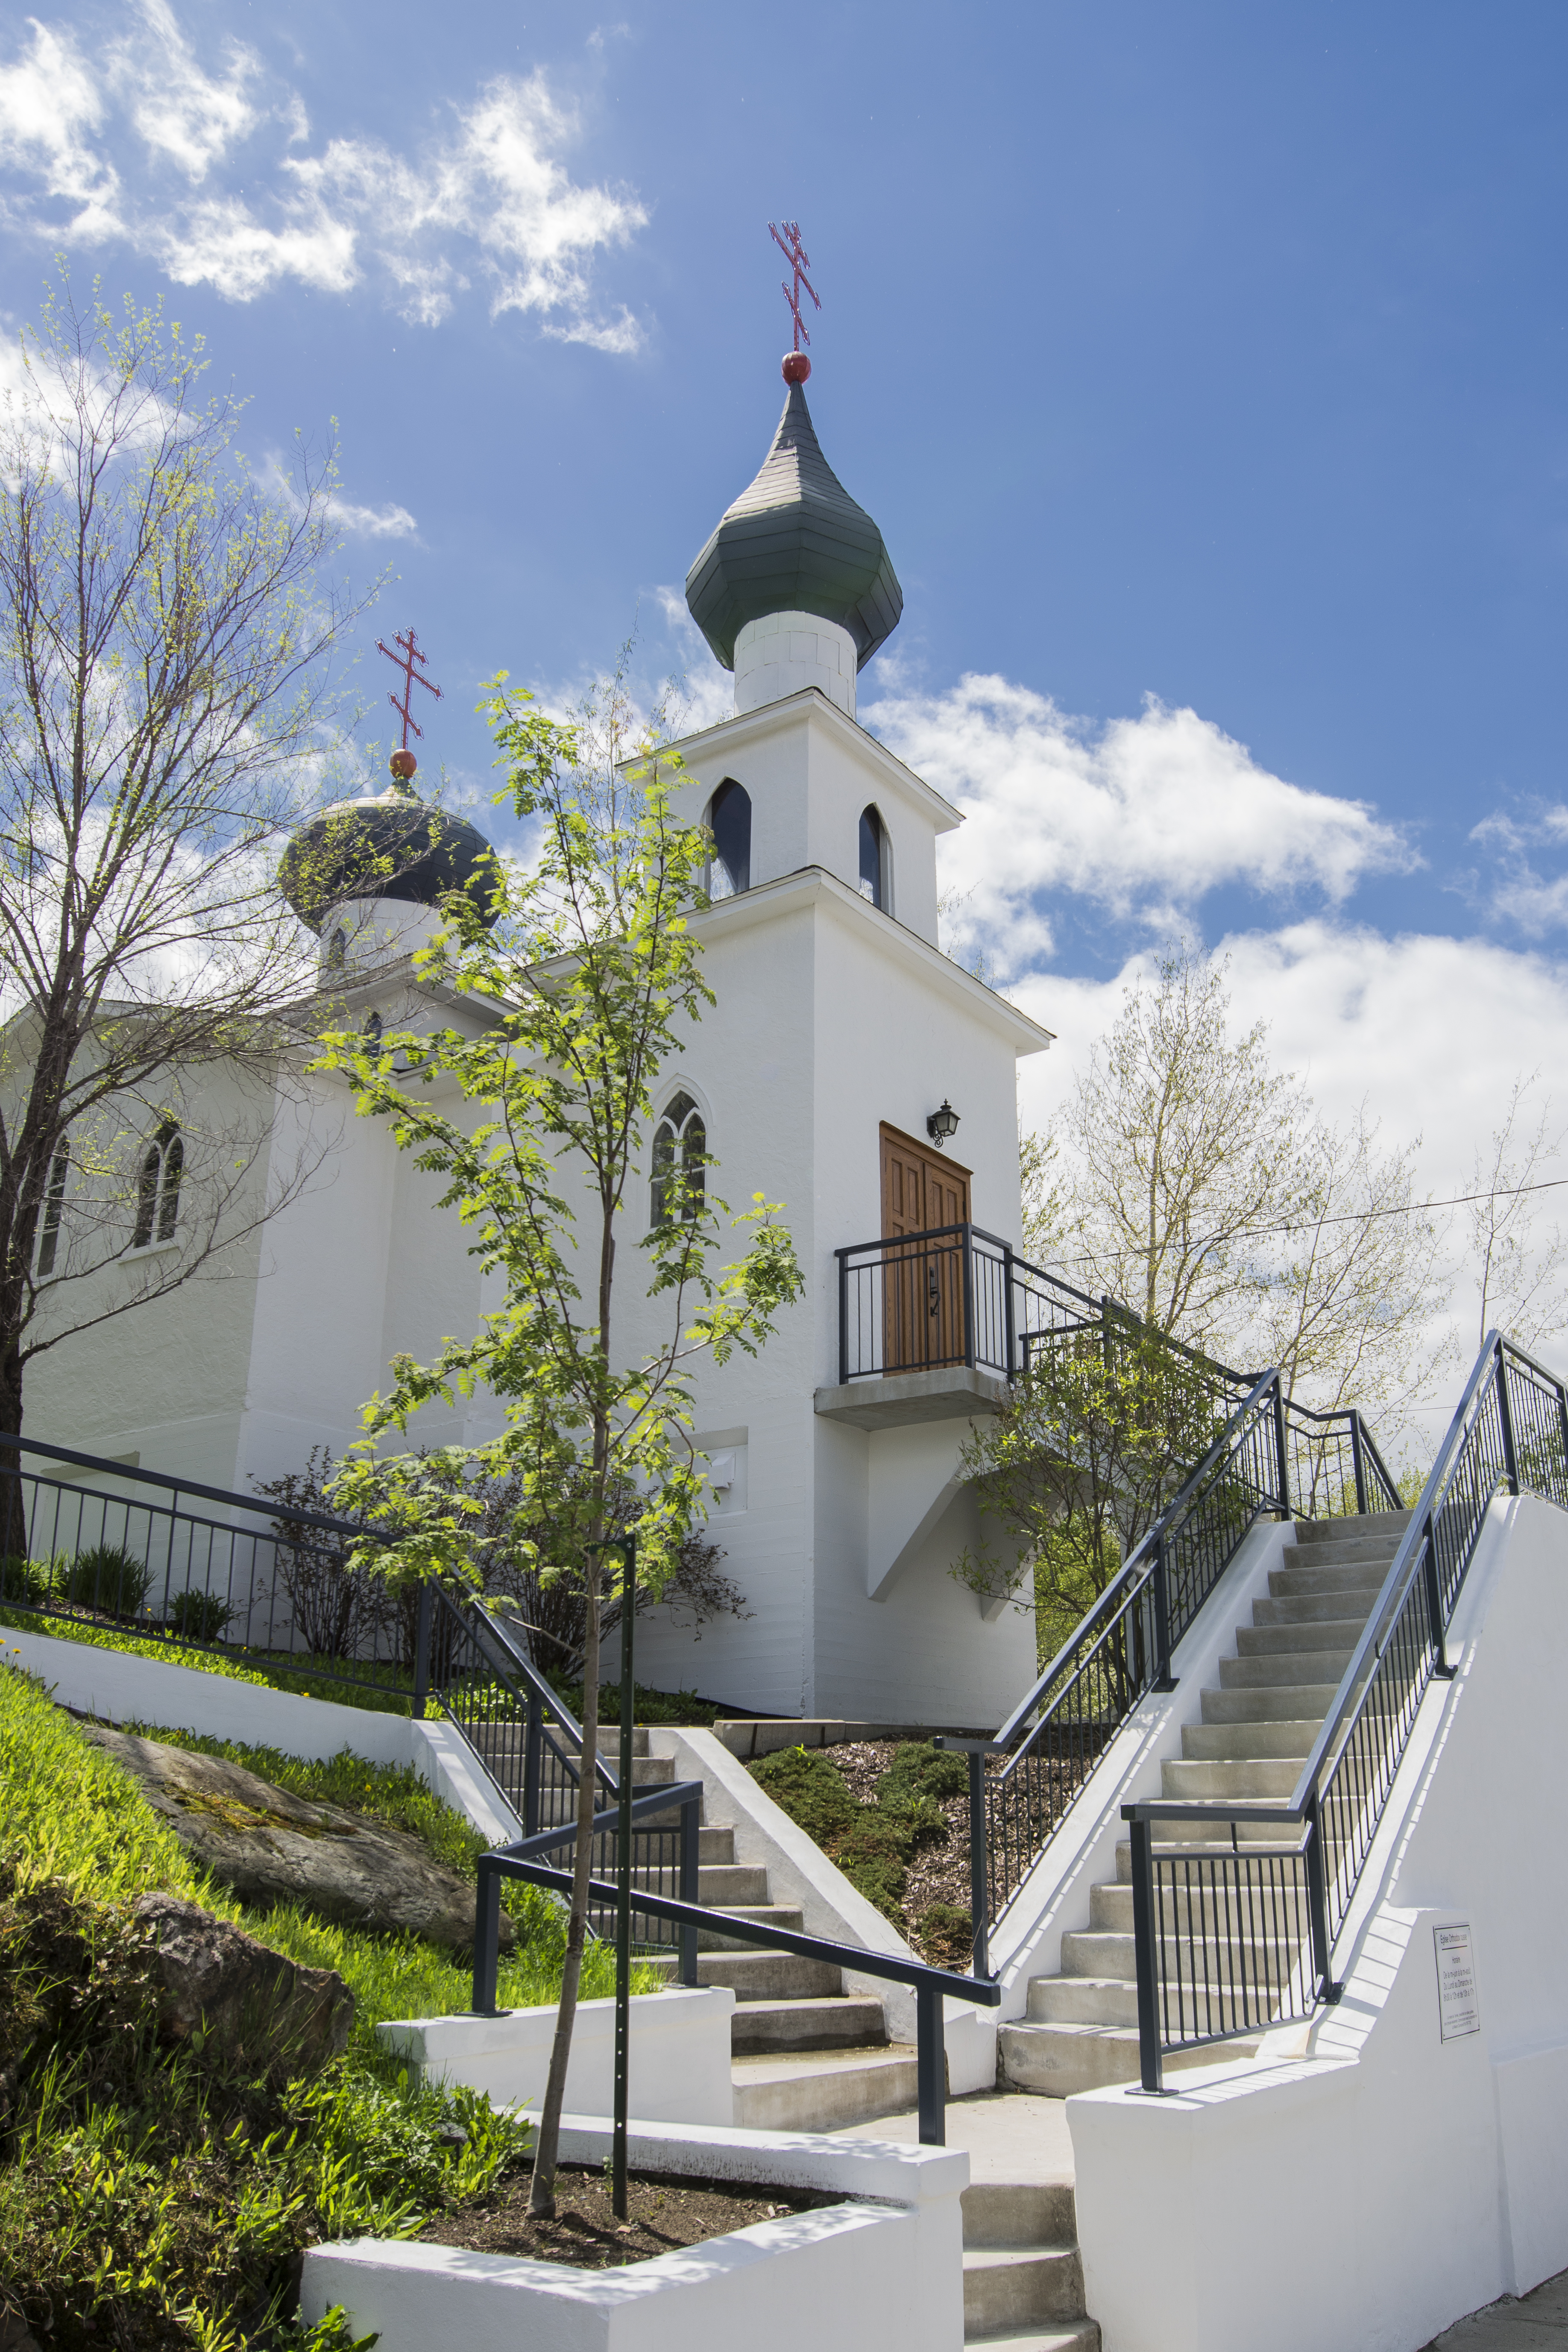 Colour photograph of a white church with orthodox crosses overlooking two bulb-shaped steeples. Concrete stairs lead to the main door and to the back of the church.